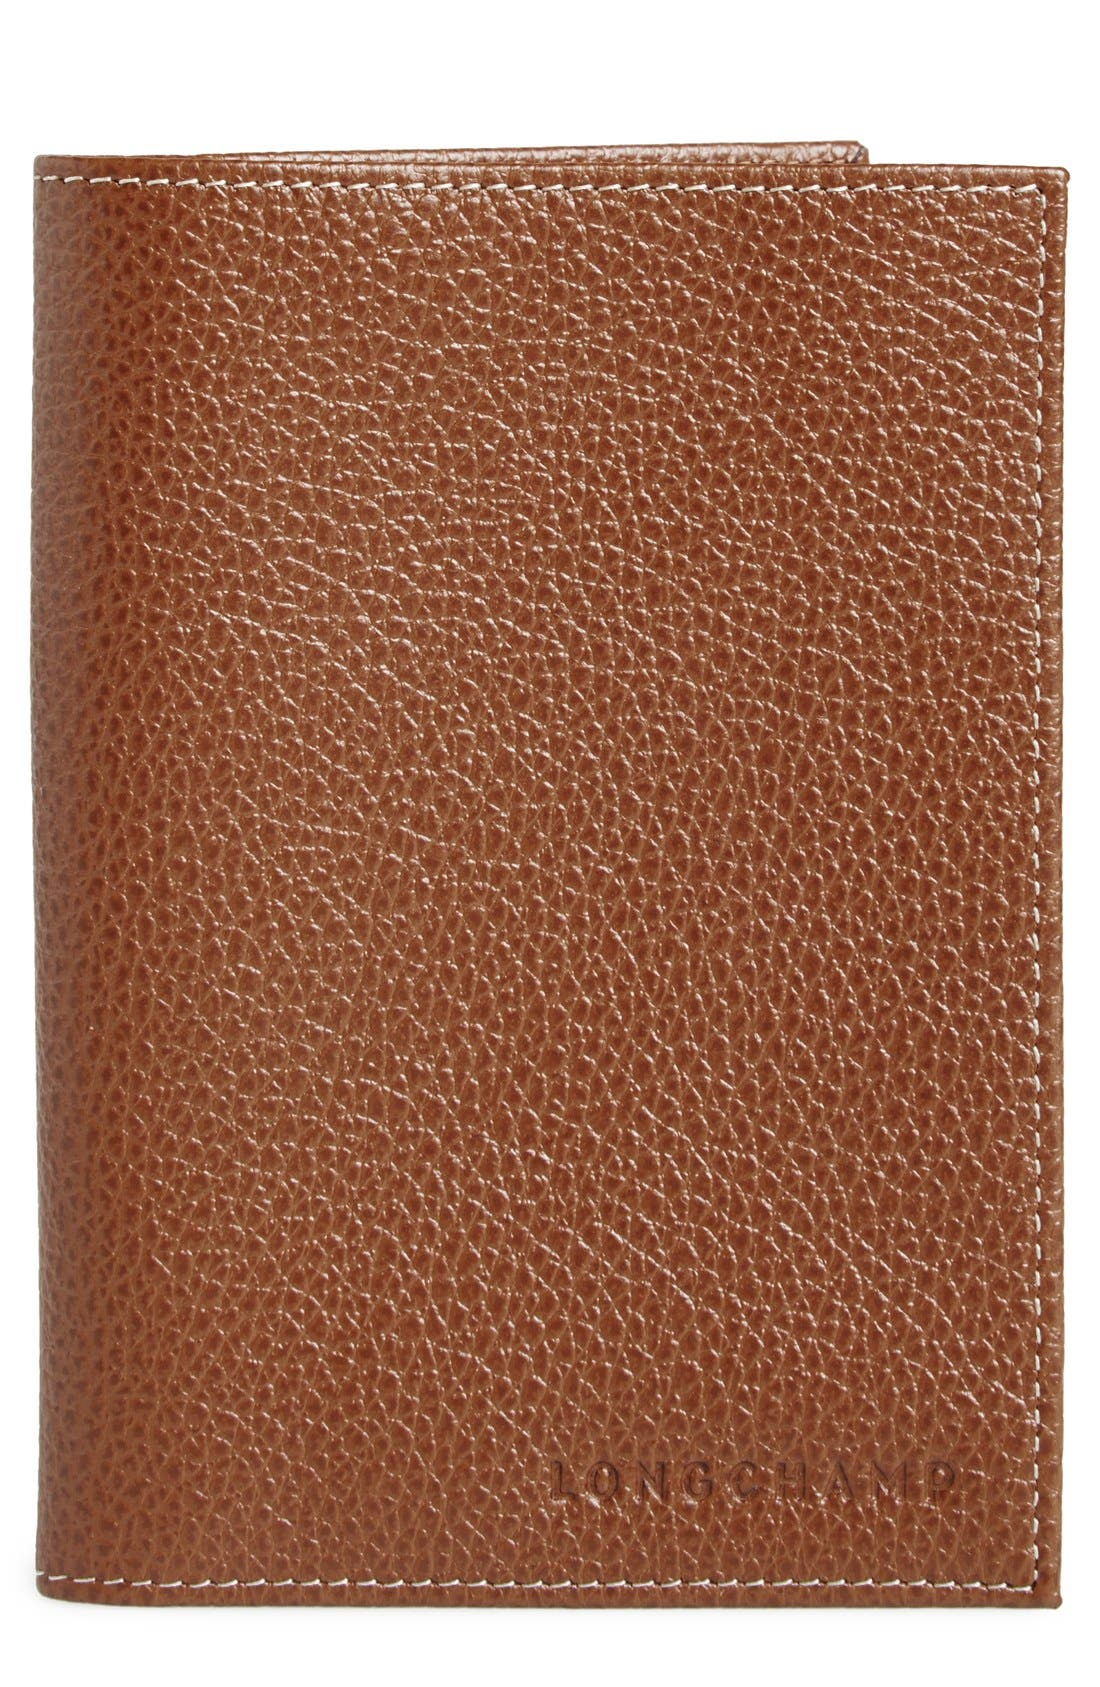 Longchamp Calfskin Leather Passport Case